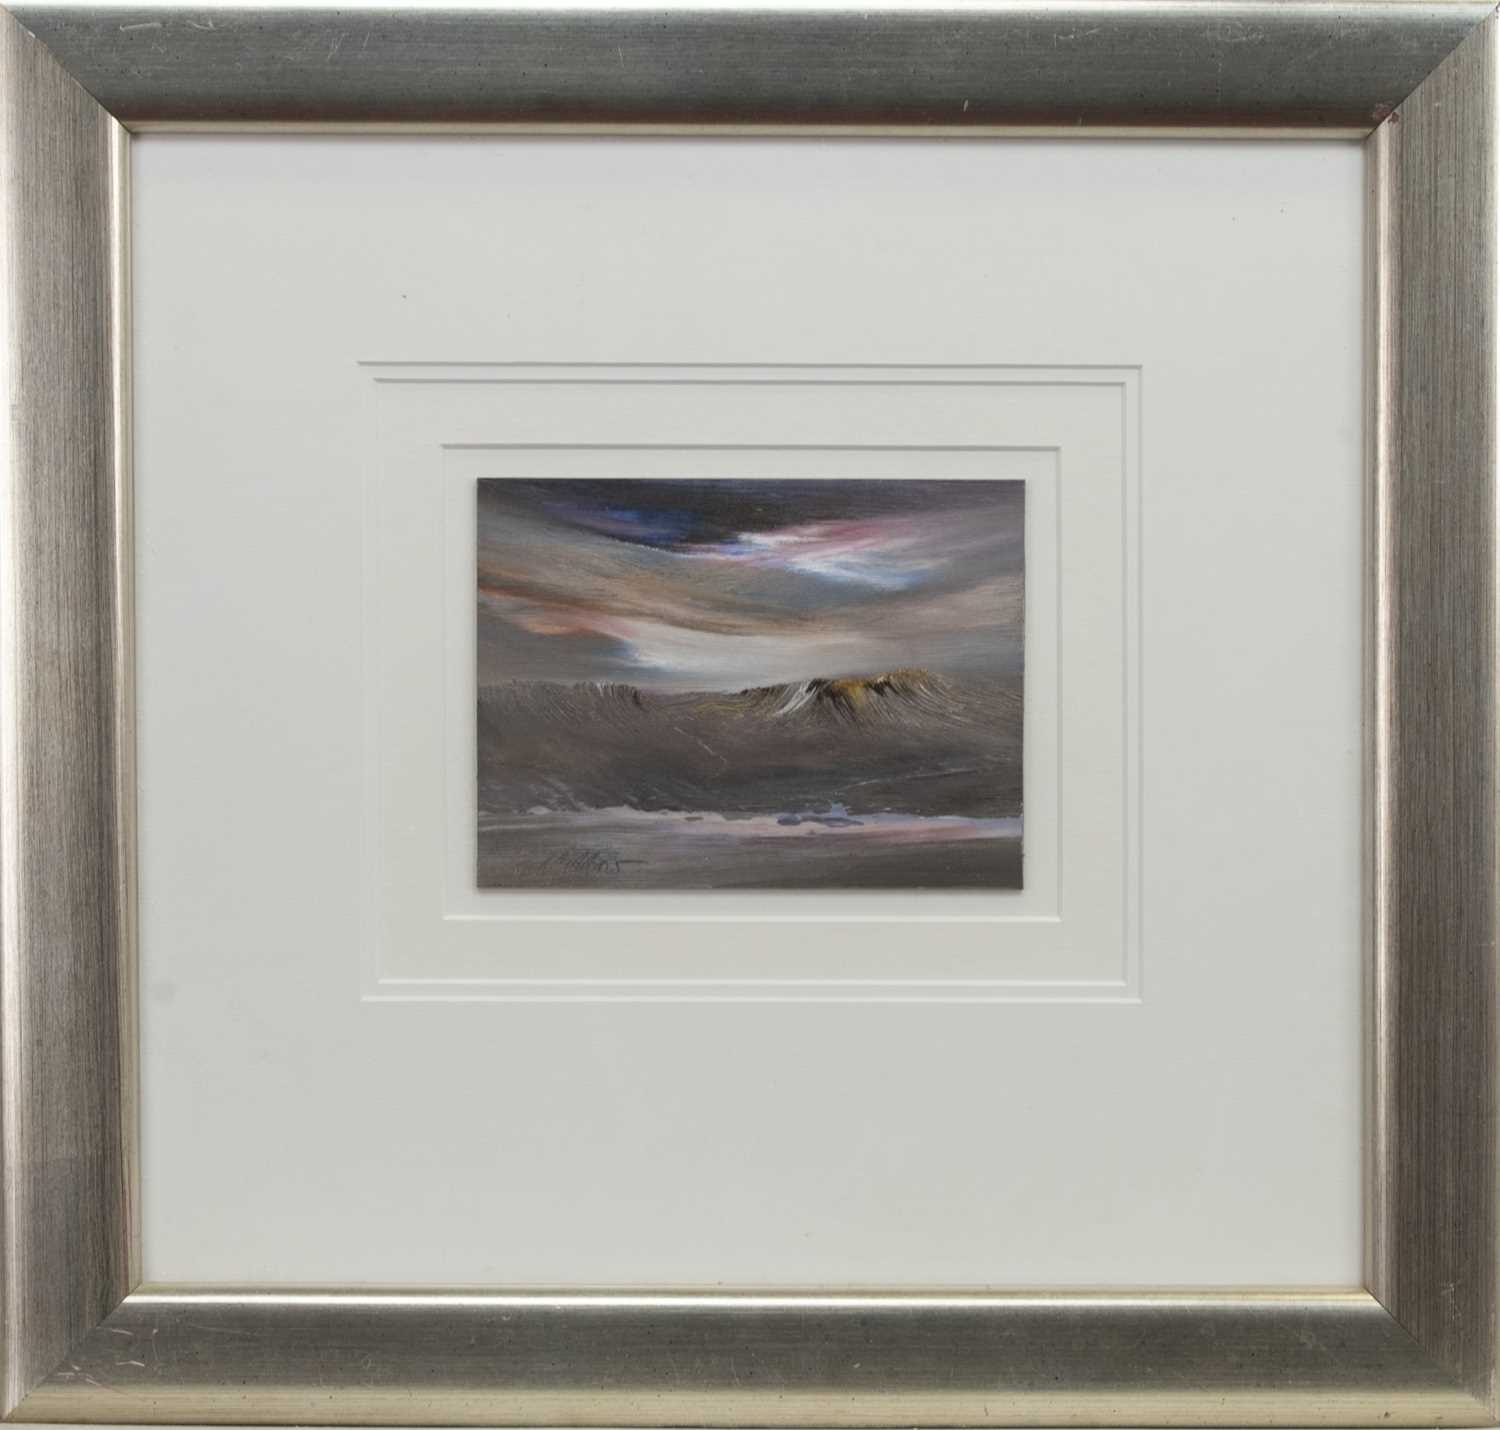 Lot 568 - BLUSTERY SKIES, AN OIL BY PETER GOODFELLOW